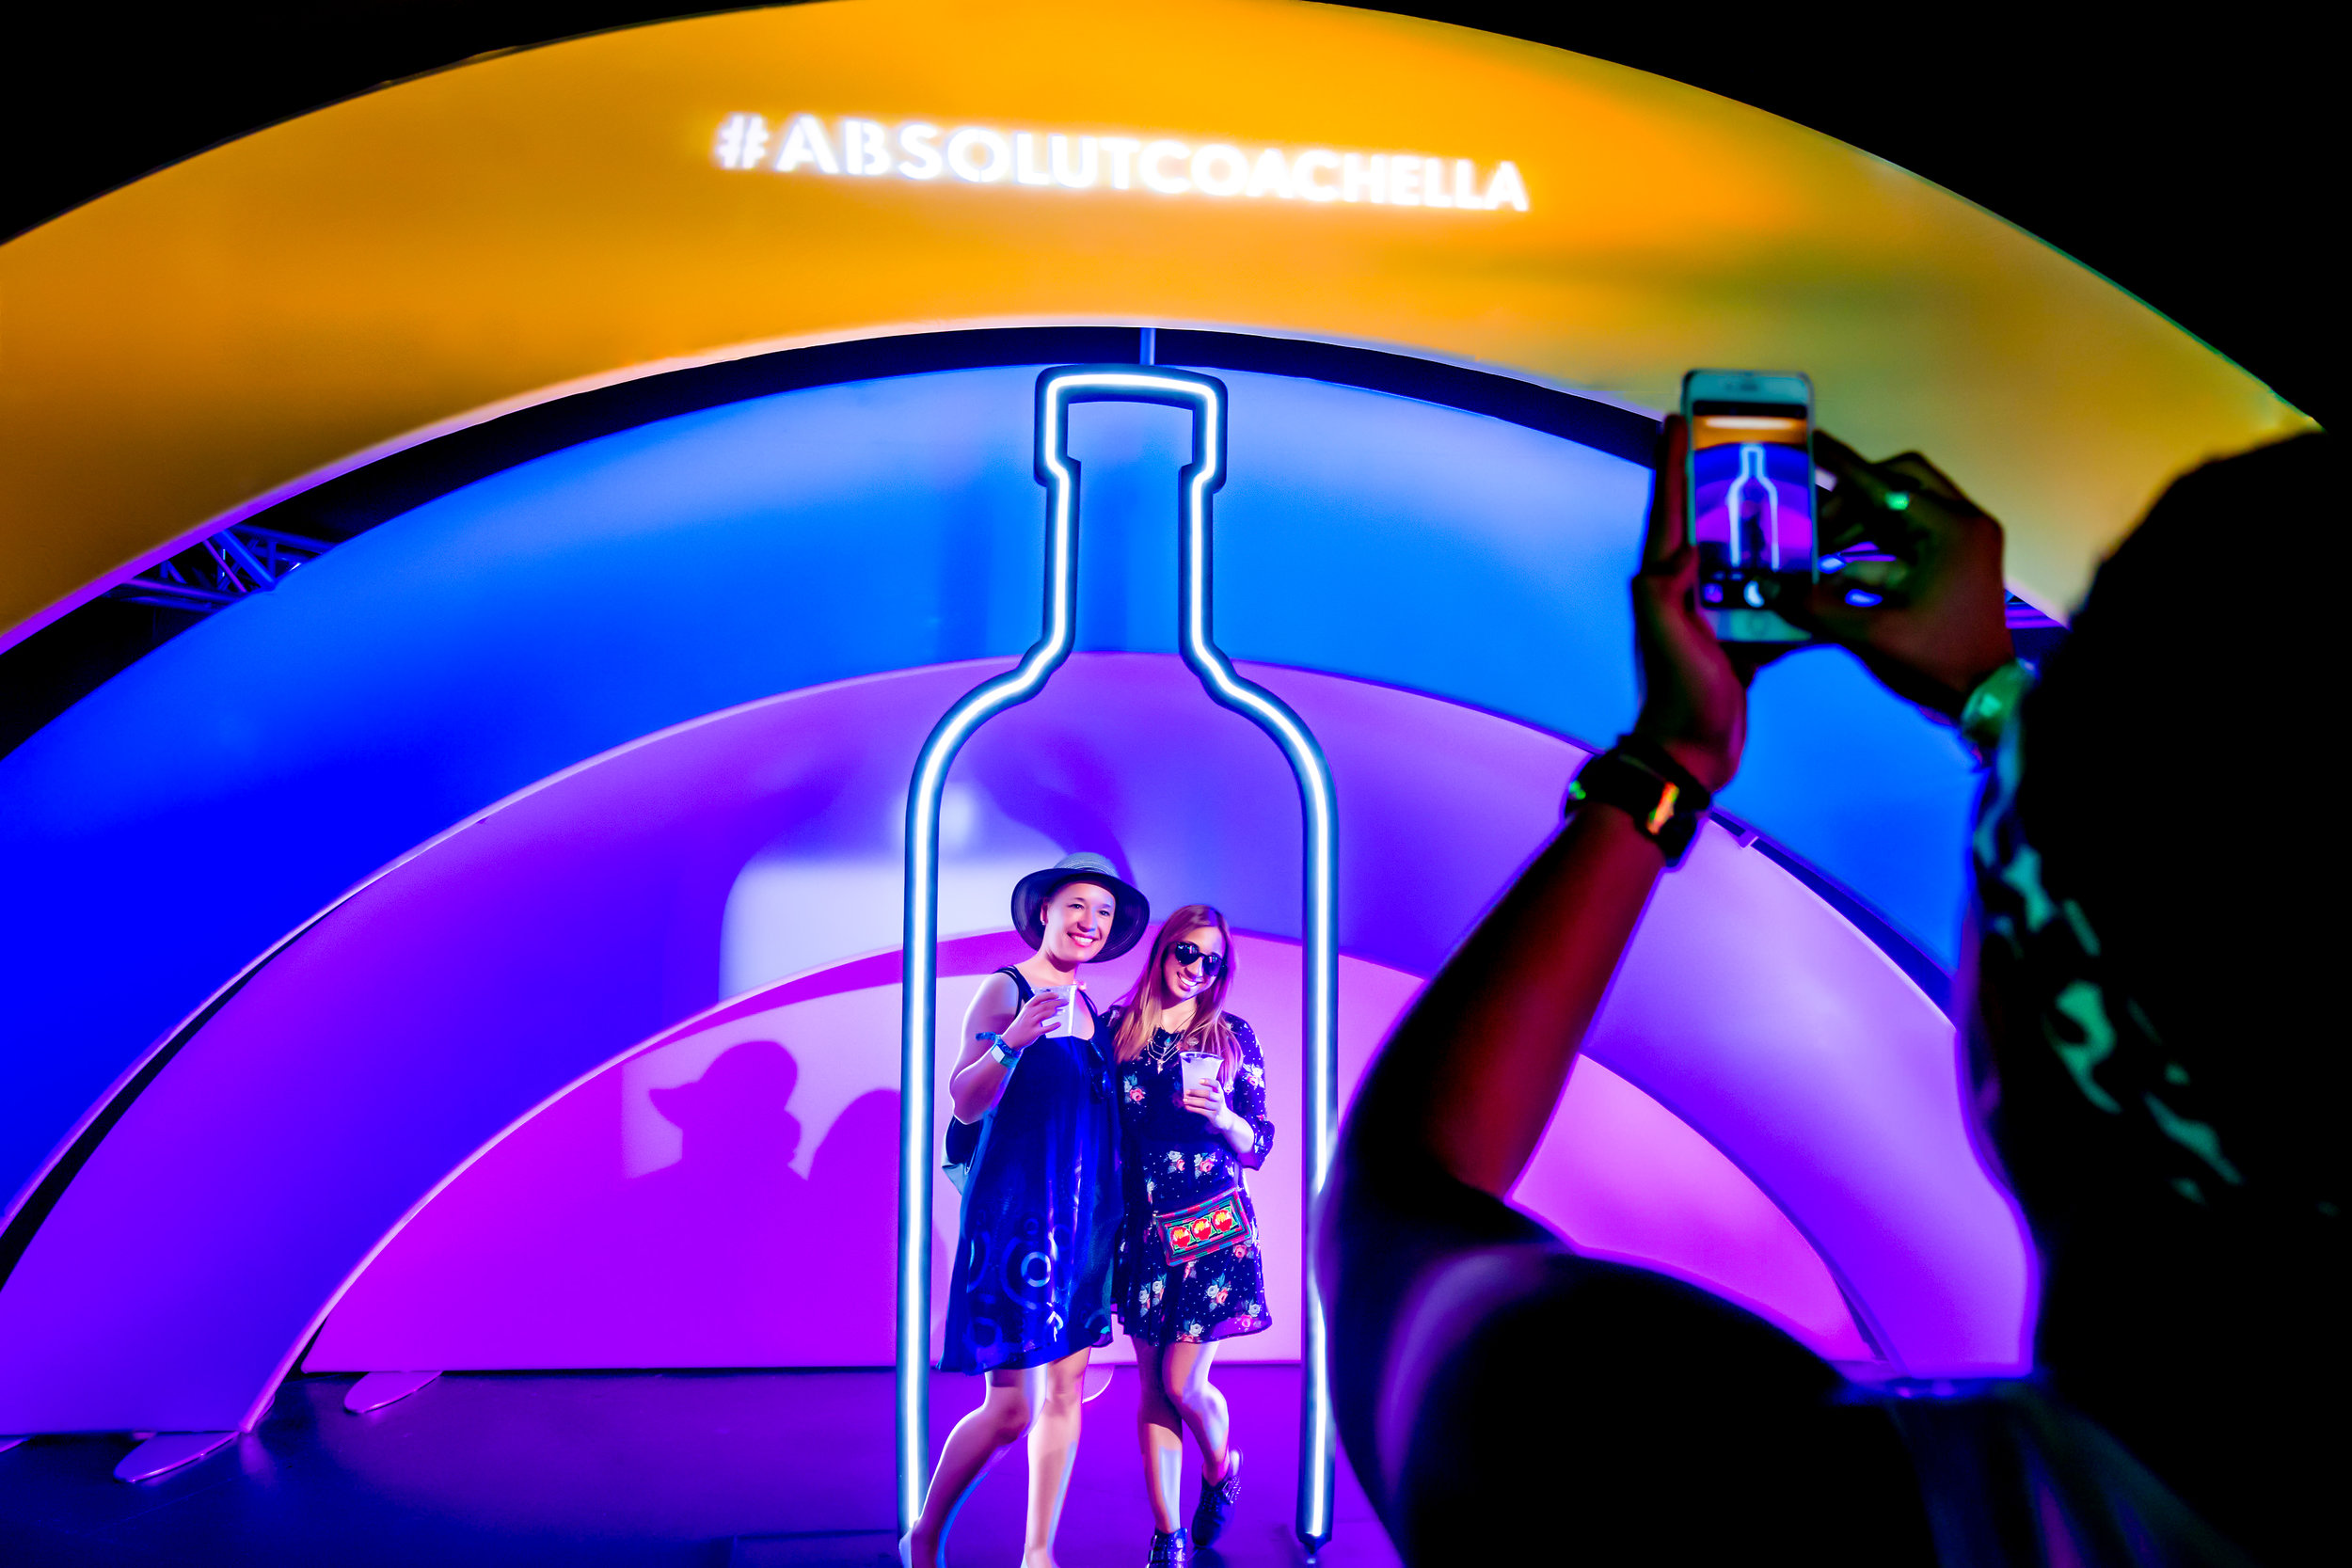 ABSOLUT COACHELLA_WEBSITE UPDATE 3-16.JPG